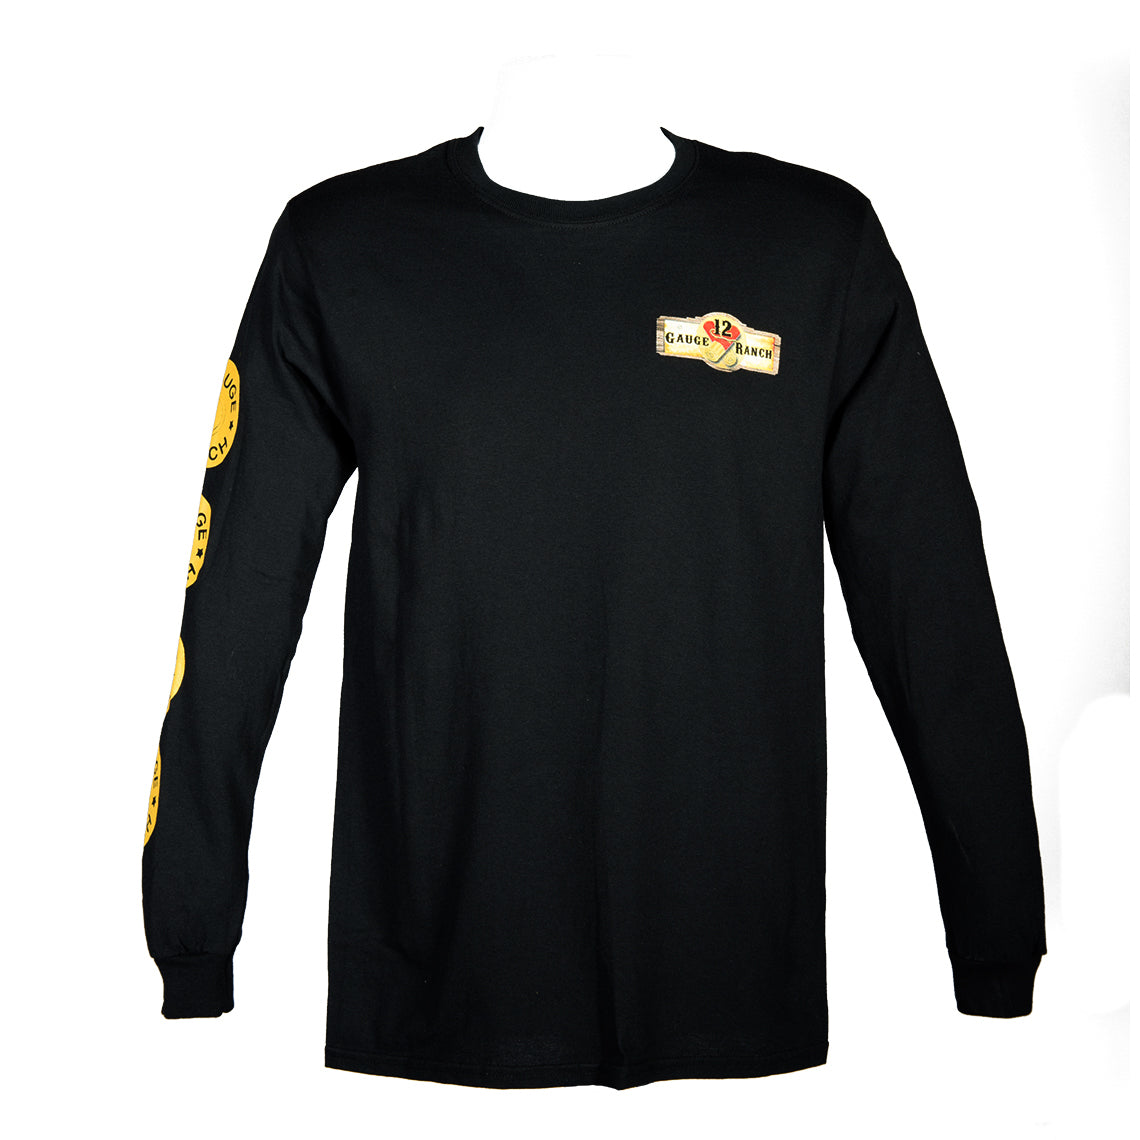 12 Gauge Ranch Black Long Sleeve Shirt (LSCBK102), Apparel, 12 Gauge Ranch, 12 Gauge Ranch Ranch  12 Gauge Ranch